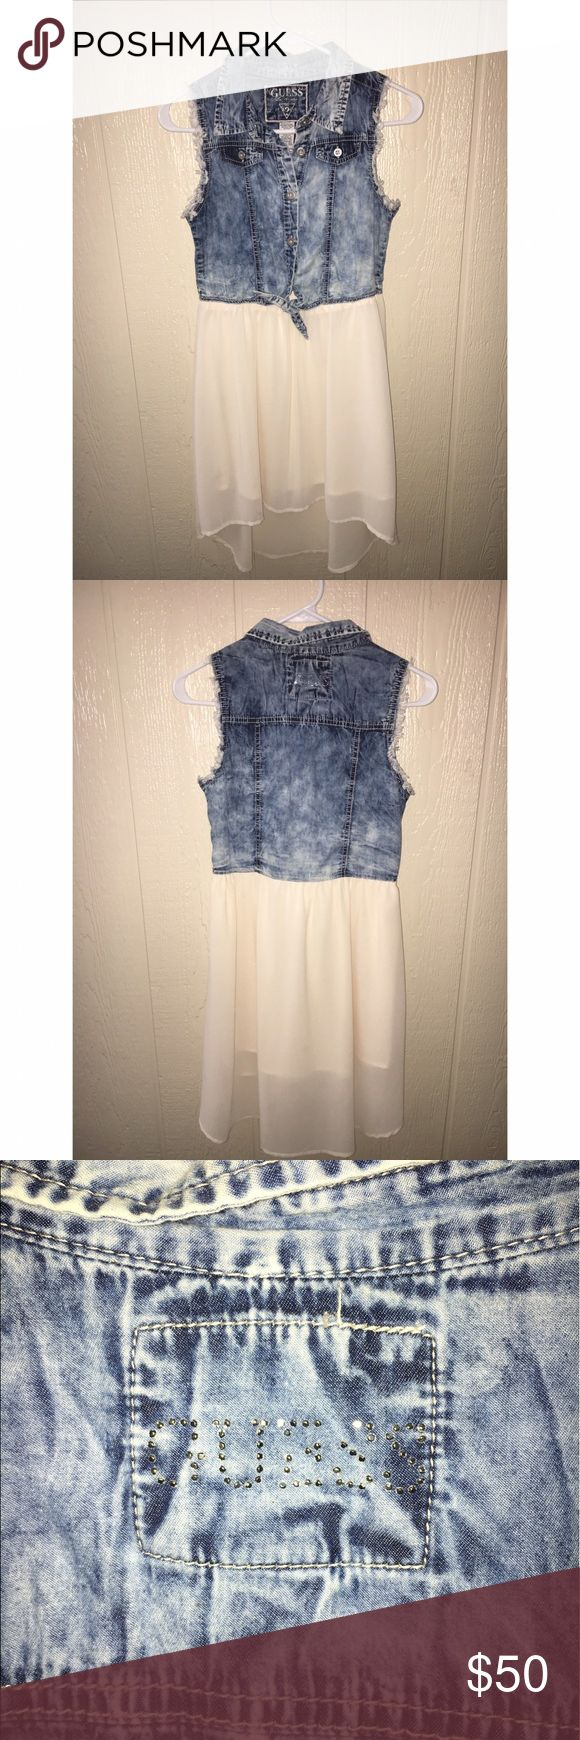 """High low Guess dress Denim and chiffon high low Guess dress. Kids size 14, but I'm 5'5"""" size 1 and it fits me perfectly. Minimally worn, but from washing a few of the metal studs came off of the back as shown in picture. Guess Dresses High Low"""